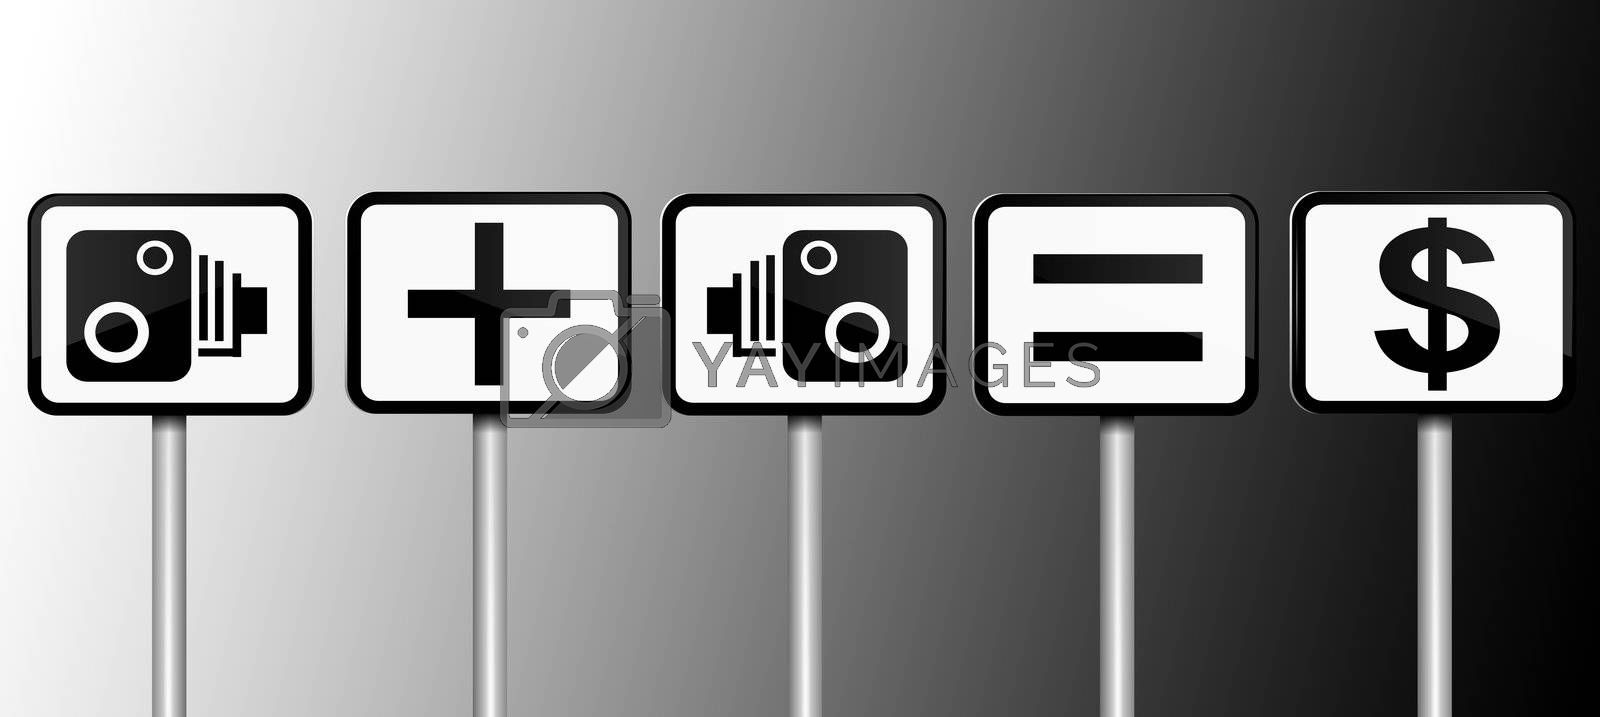 Illustration depicting road signs with speed camera financial gain concept. Black and white gradient background.